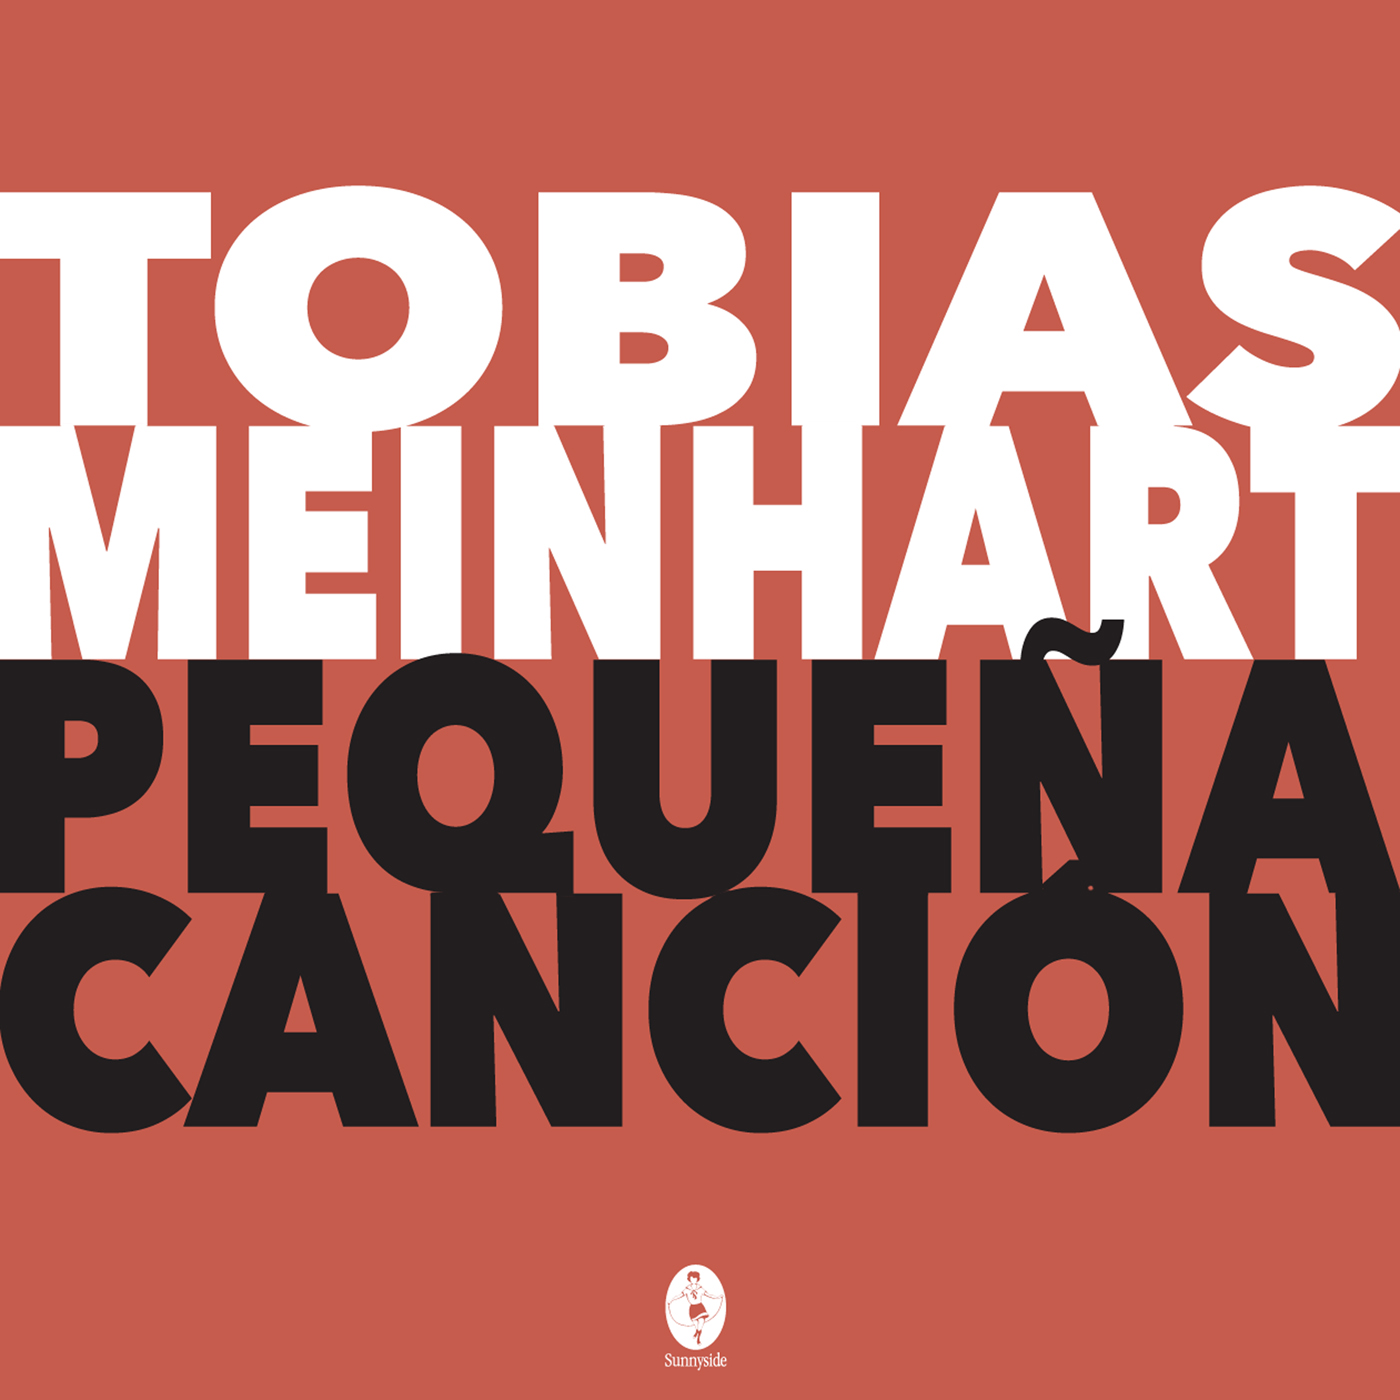 Pequena Cancion  by Tobias  Meinhart cover